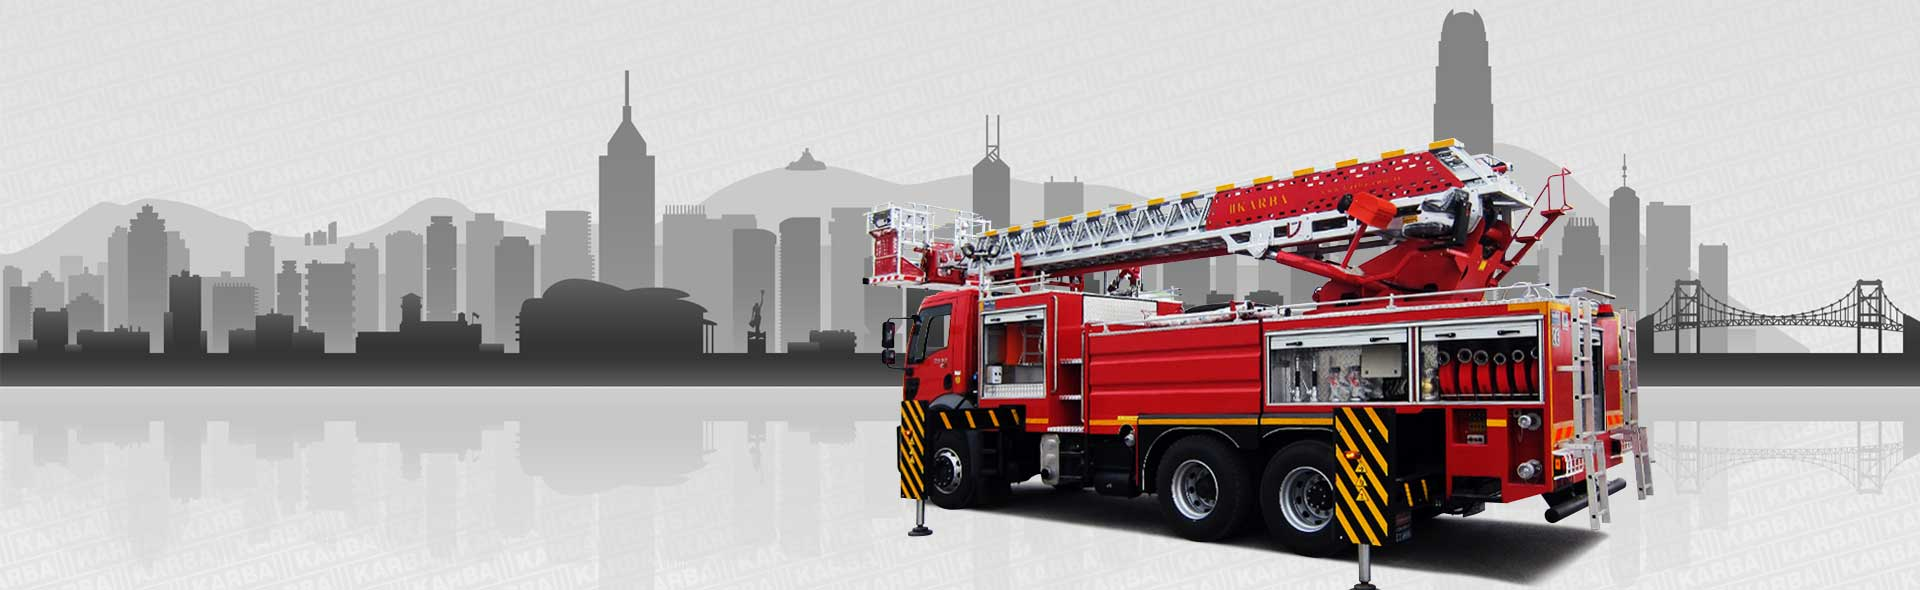 Stair fire fighting vehicles